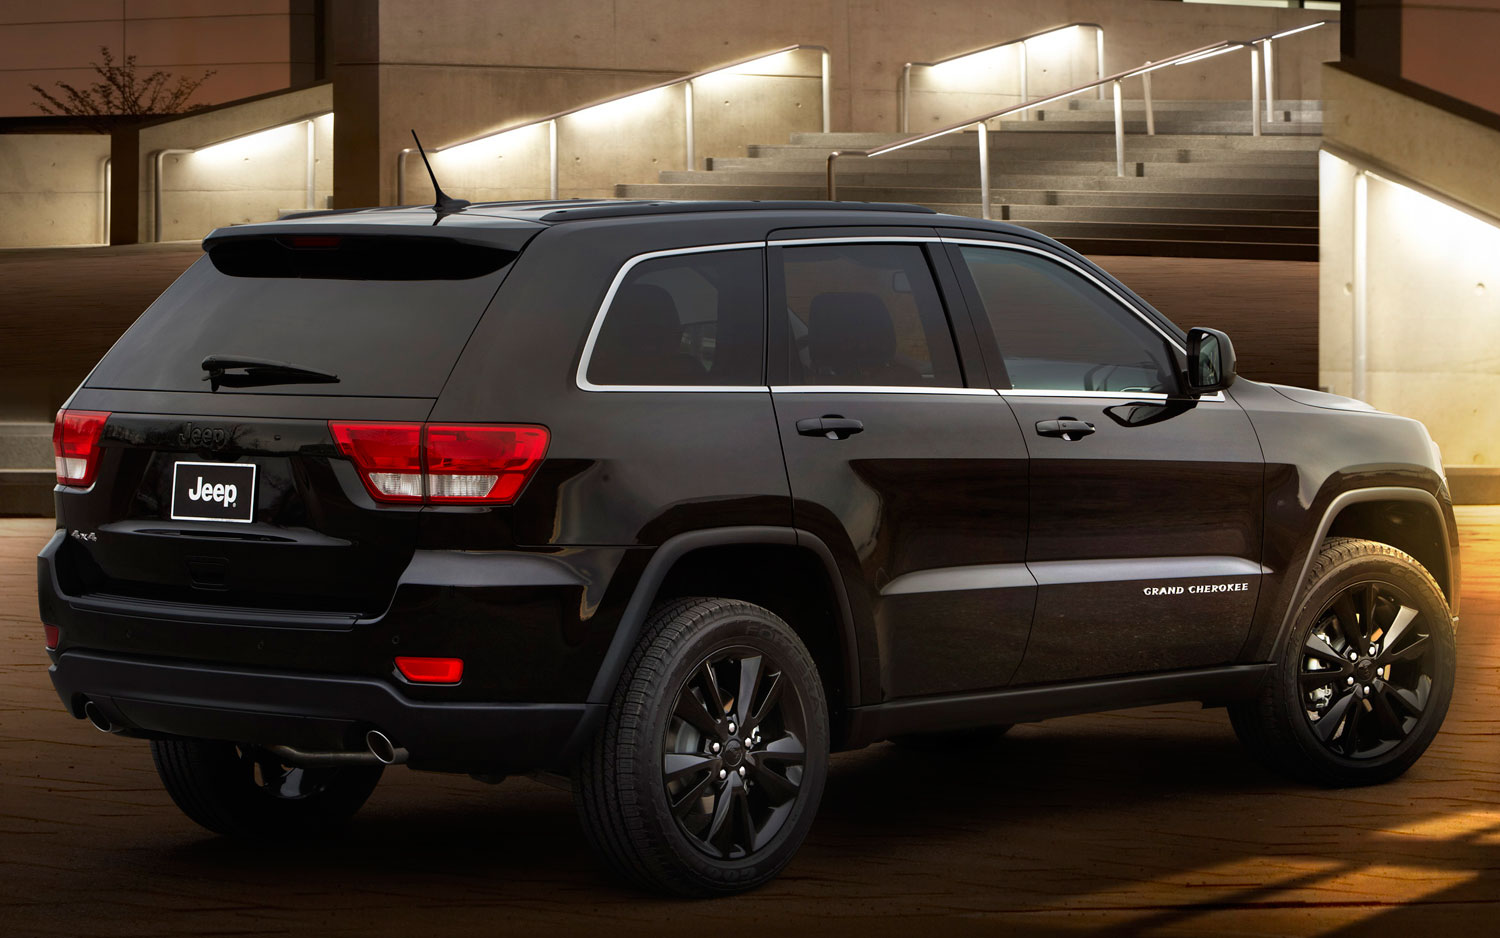 jeep previews new 2012 grand cherokee package, asks you to name it